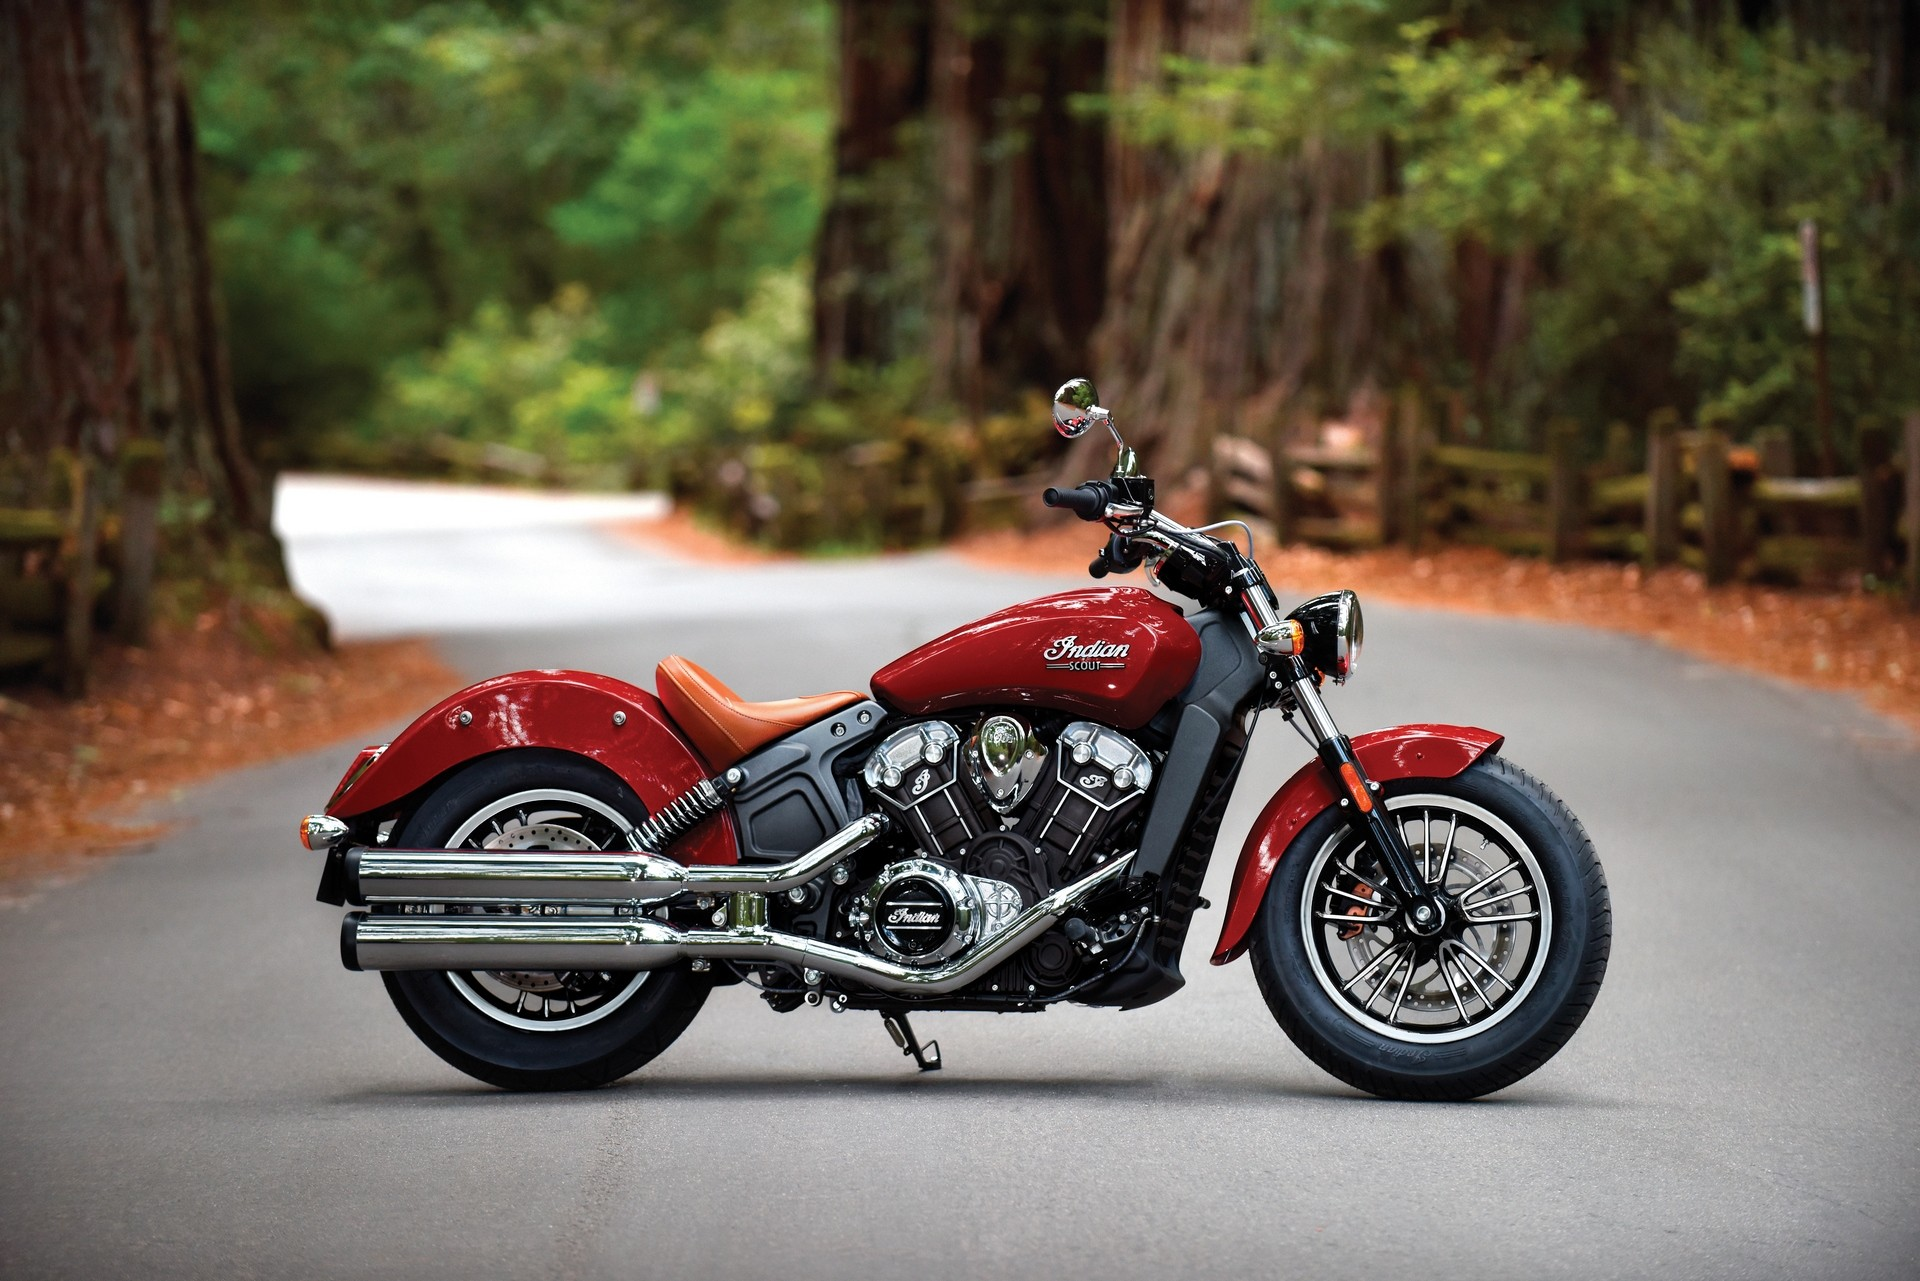 Indian motorcycle desktop wallpaper 57 images - Indian scout bike hd wallpaper ...